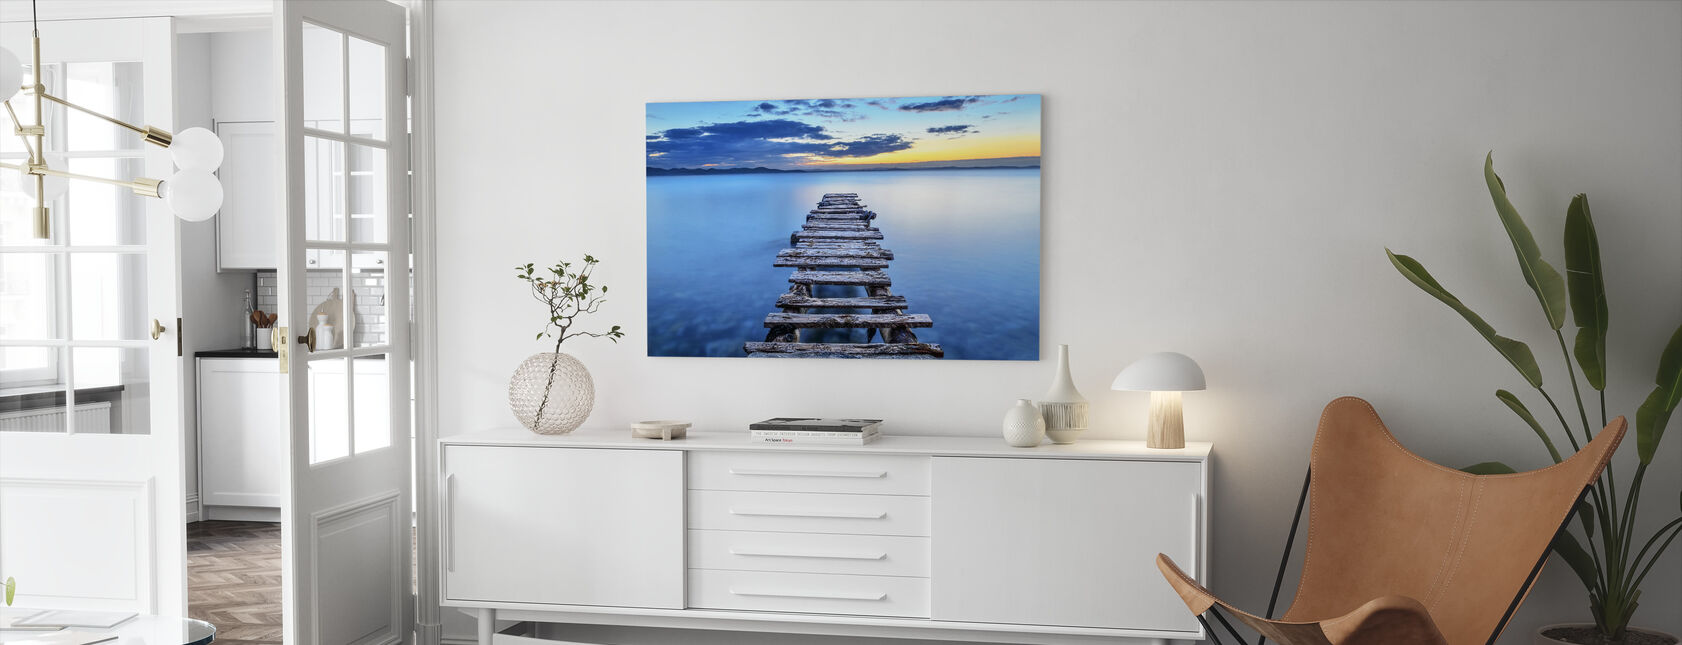 Pier - Canvas print - Living Room